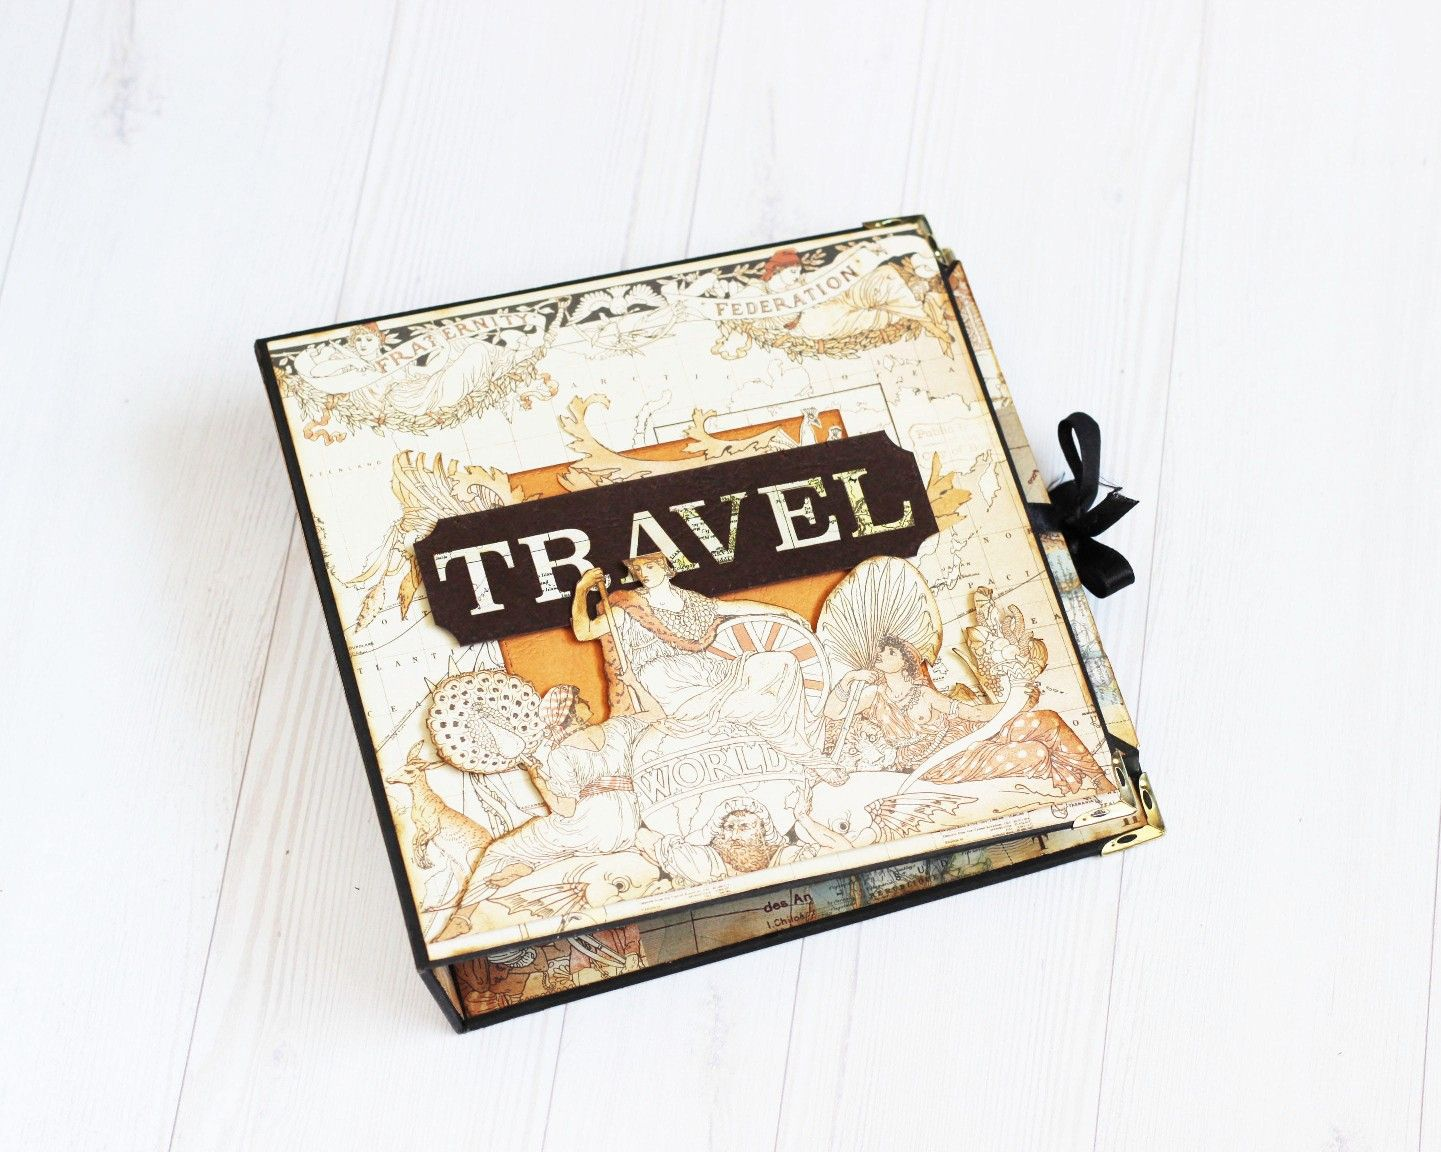 Excited to share the latest addition to my etsy shop travel memory excited to share the latest addition to my etsy shop travel memory book world travelcustom albumvacation journaljourney albumtravel photo album gumiabroncs Gallery